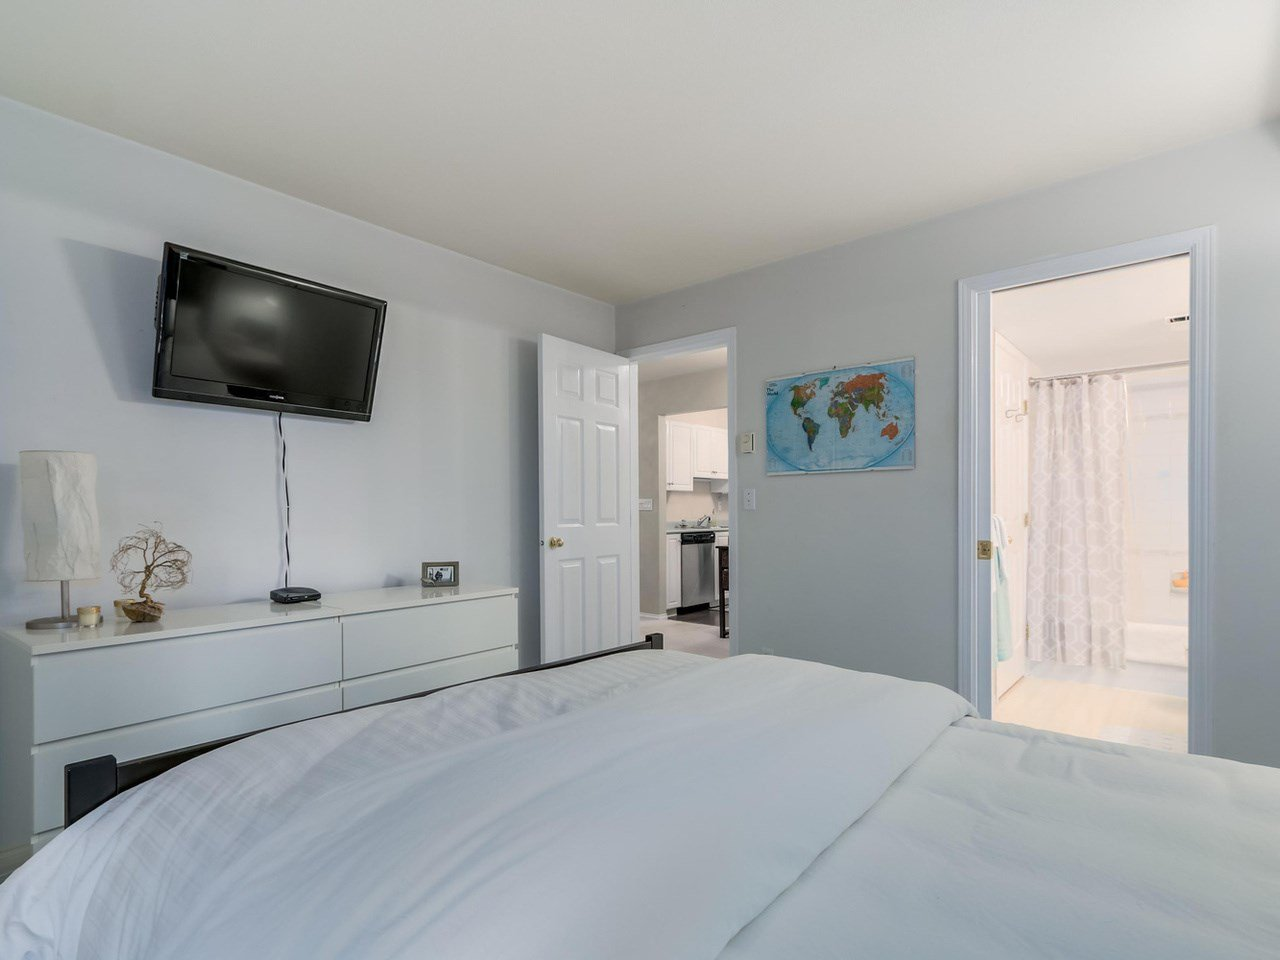 Photo 11: Photos: 107 515 WHITING Way in Coquitlam: Coquitlam West Condo for sale : MLS®# R2073119